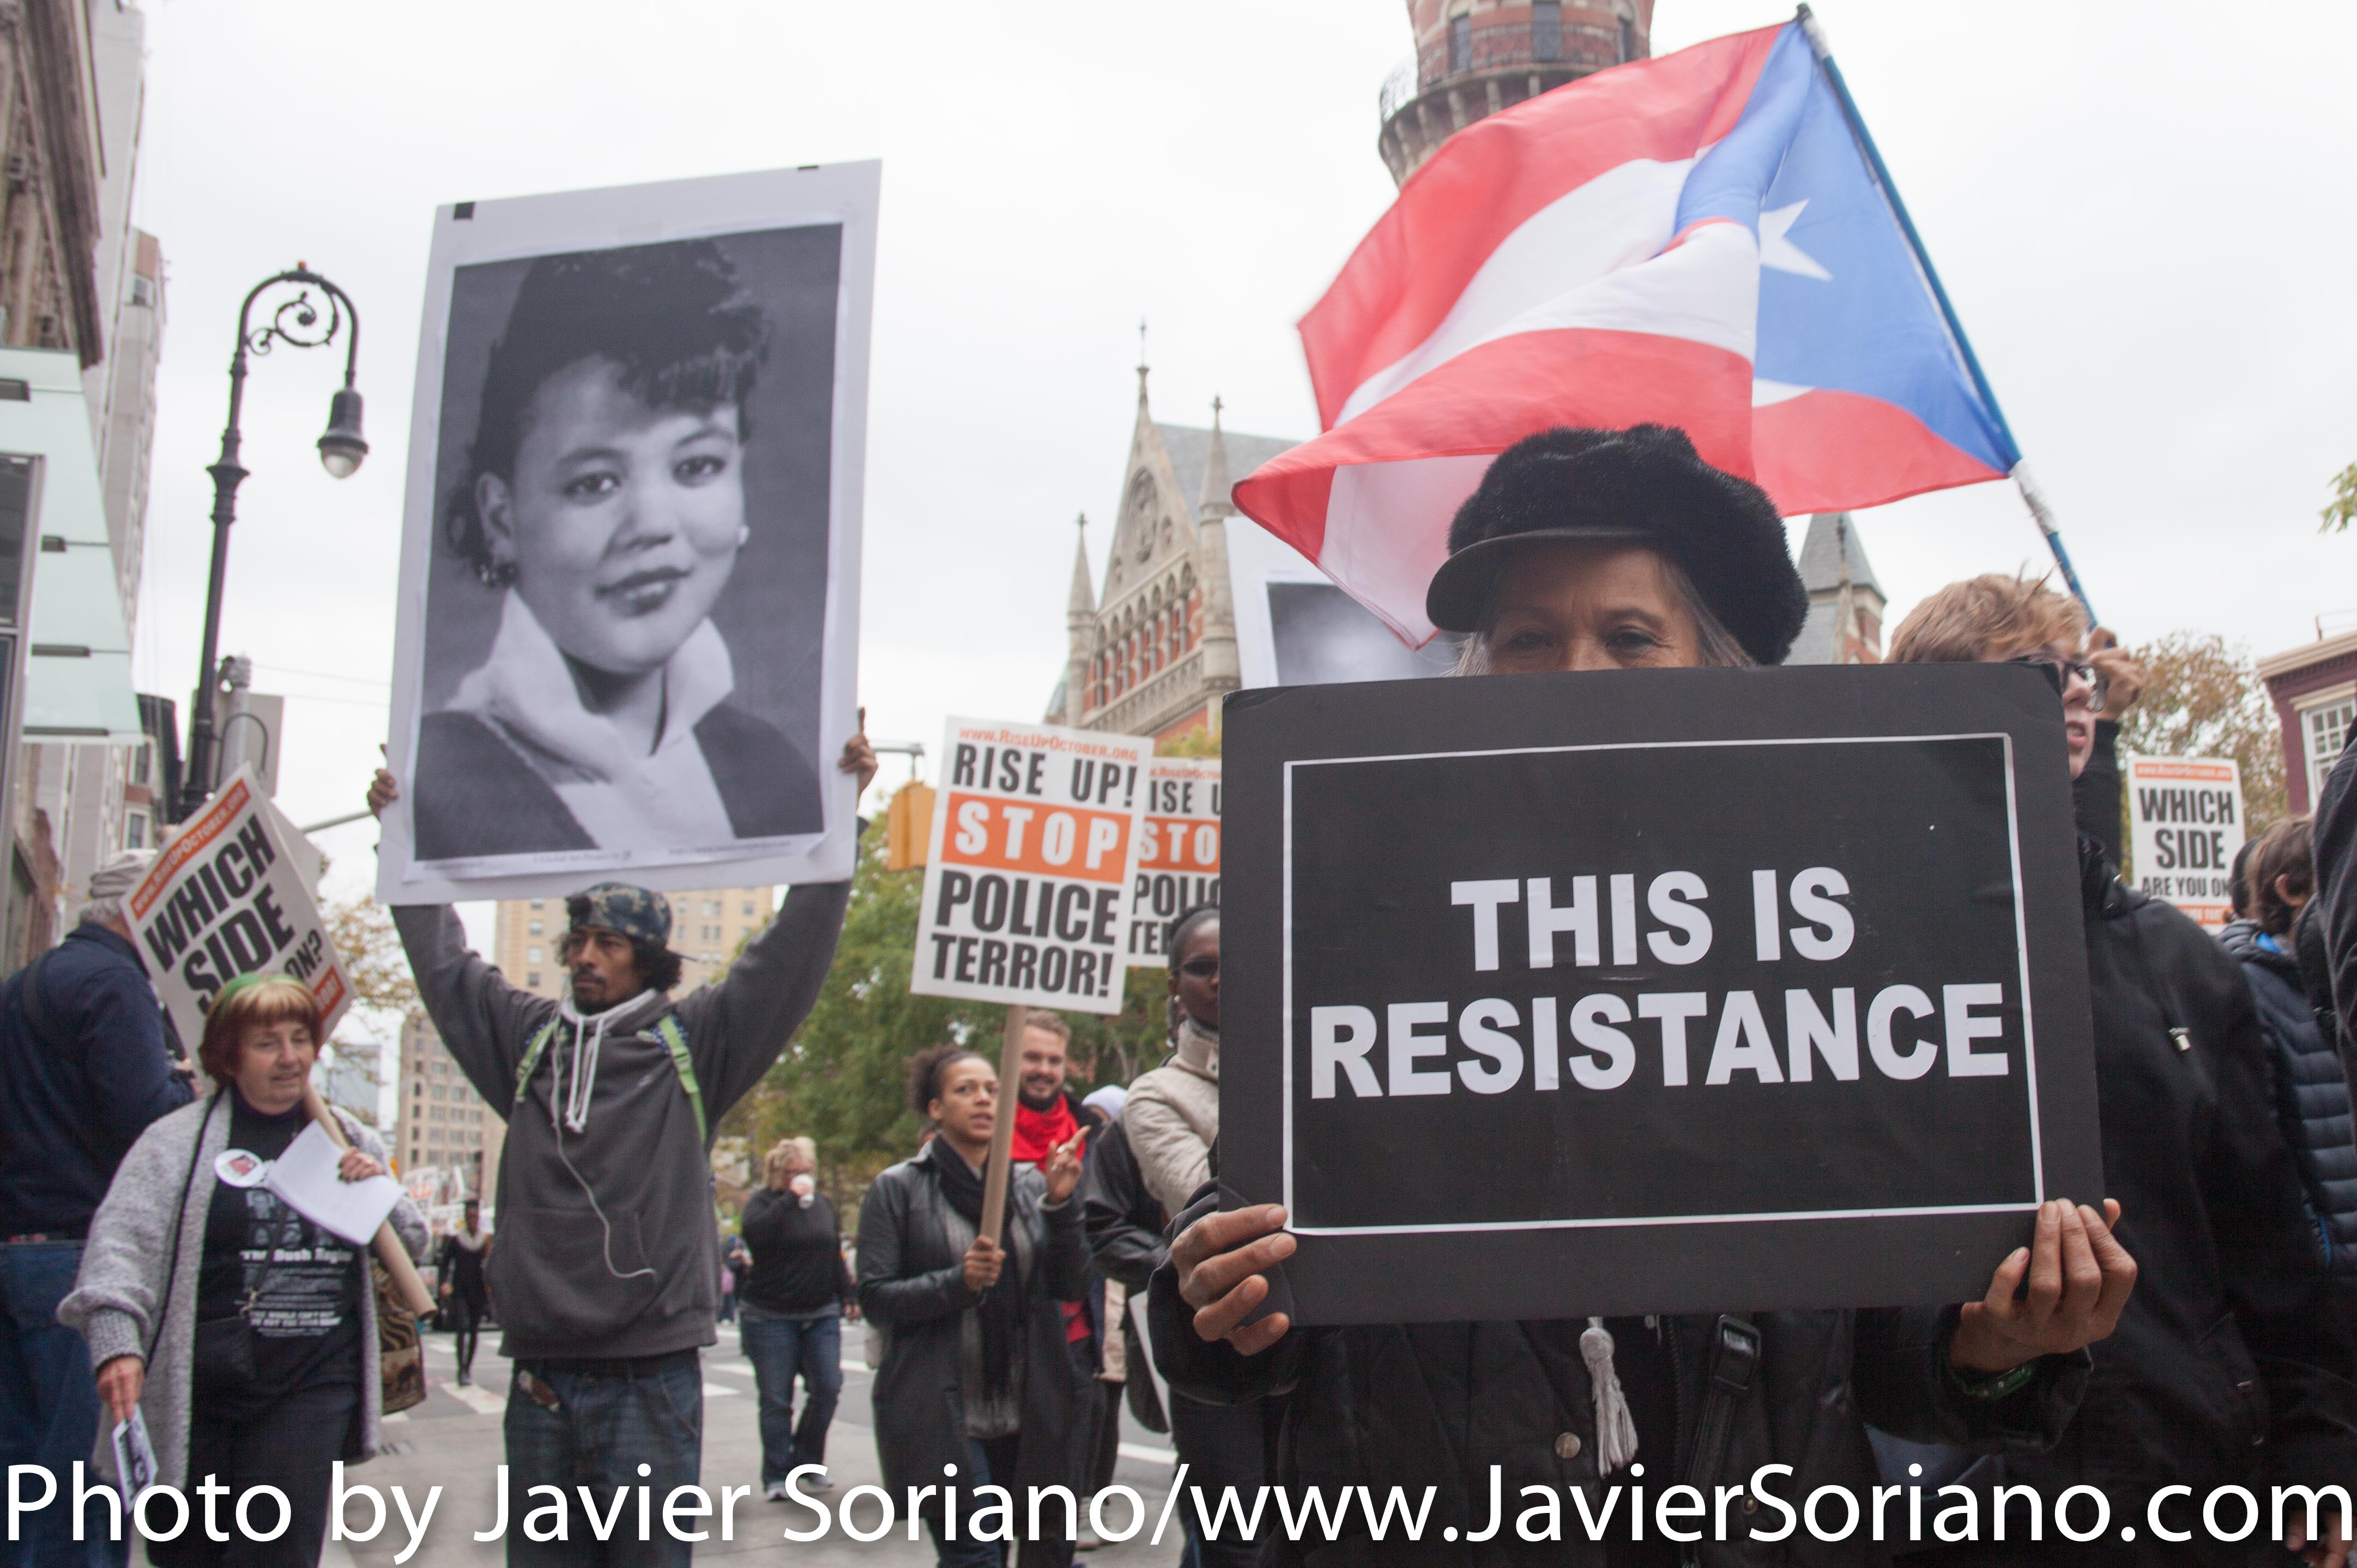 On Saturday, October 24, 2015, thousands gathered at Washington Square Park for a rally and march against police brutality in the United States of America. After the rally, they marched to Bryant Park where they had another rally. 11 people were arrested in Midtown during the #RiseUpOctober protest. Photo by Javier Soriano/http://www.JavierSoriano.com/